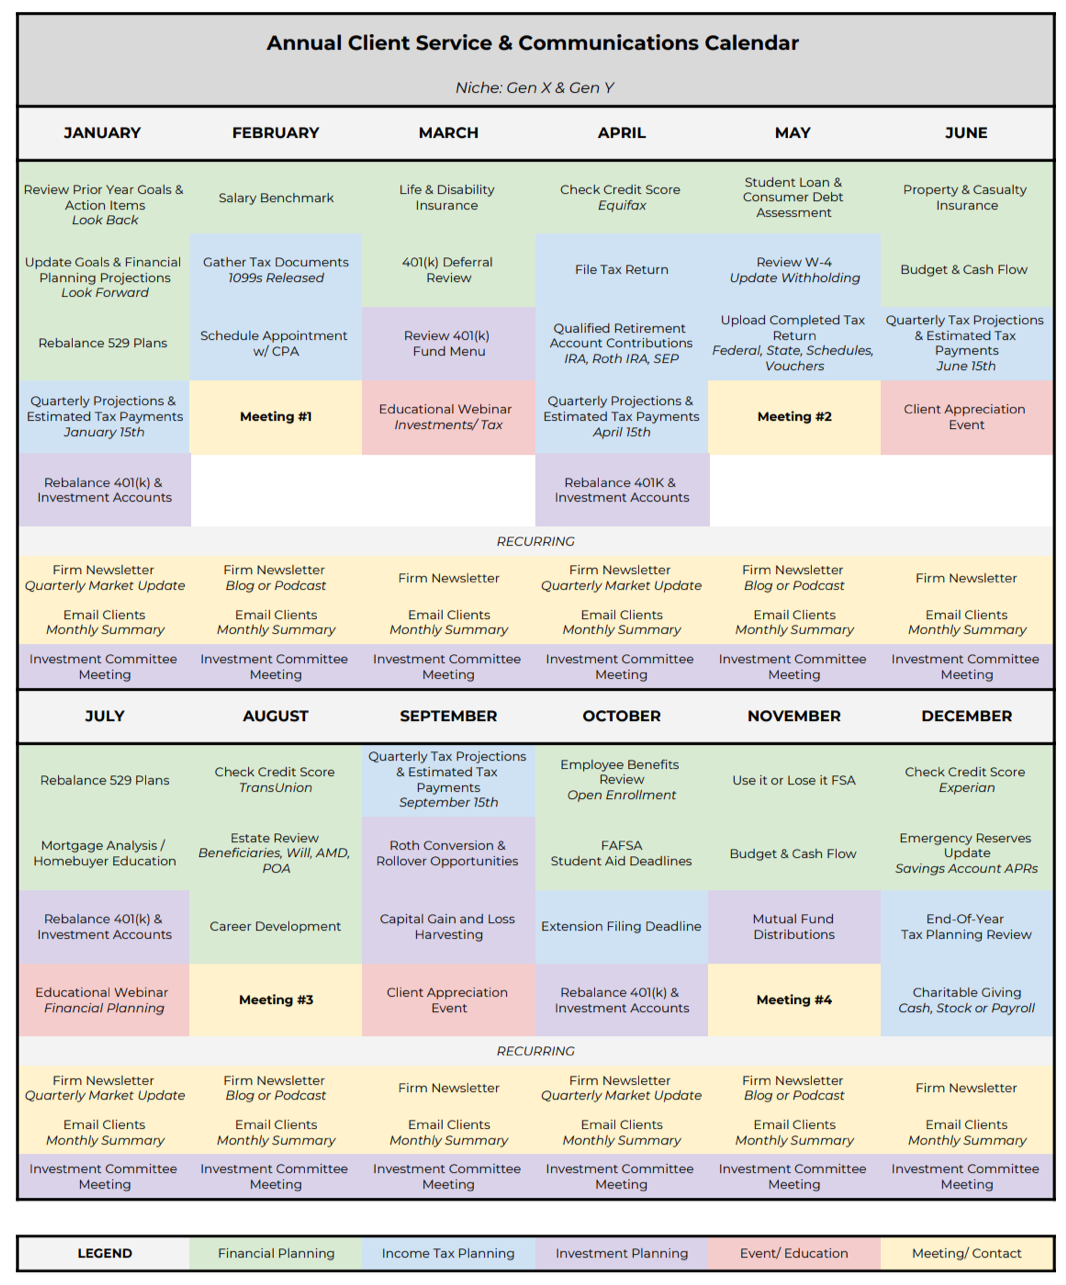 Annual Client Service and Communications Calendar